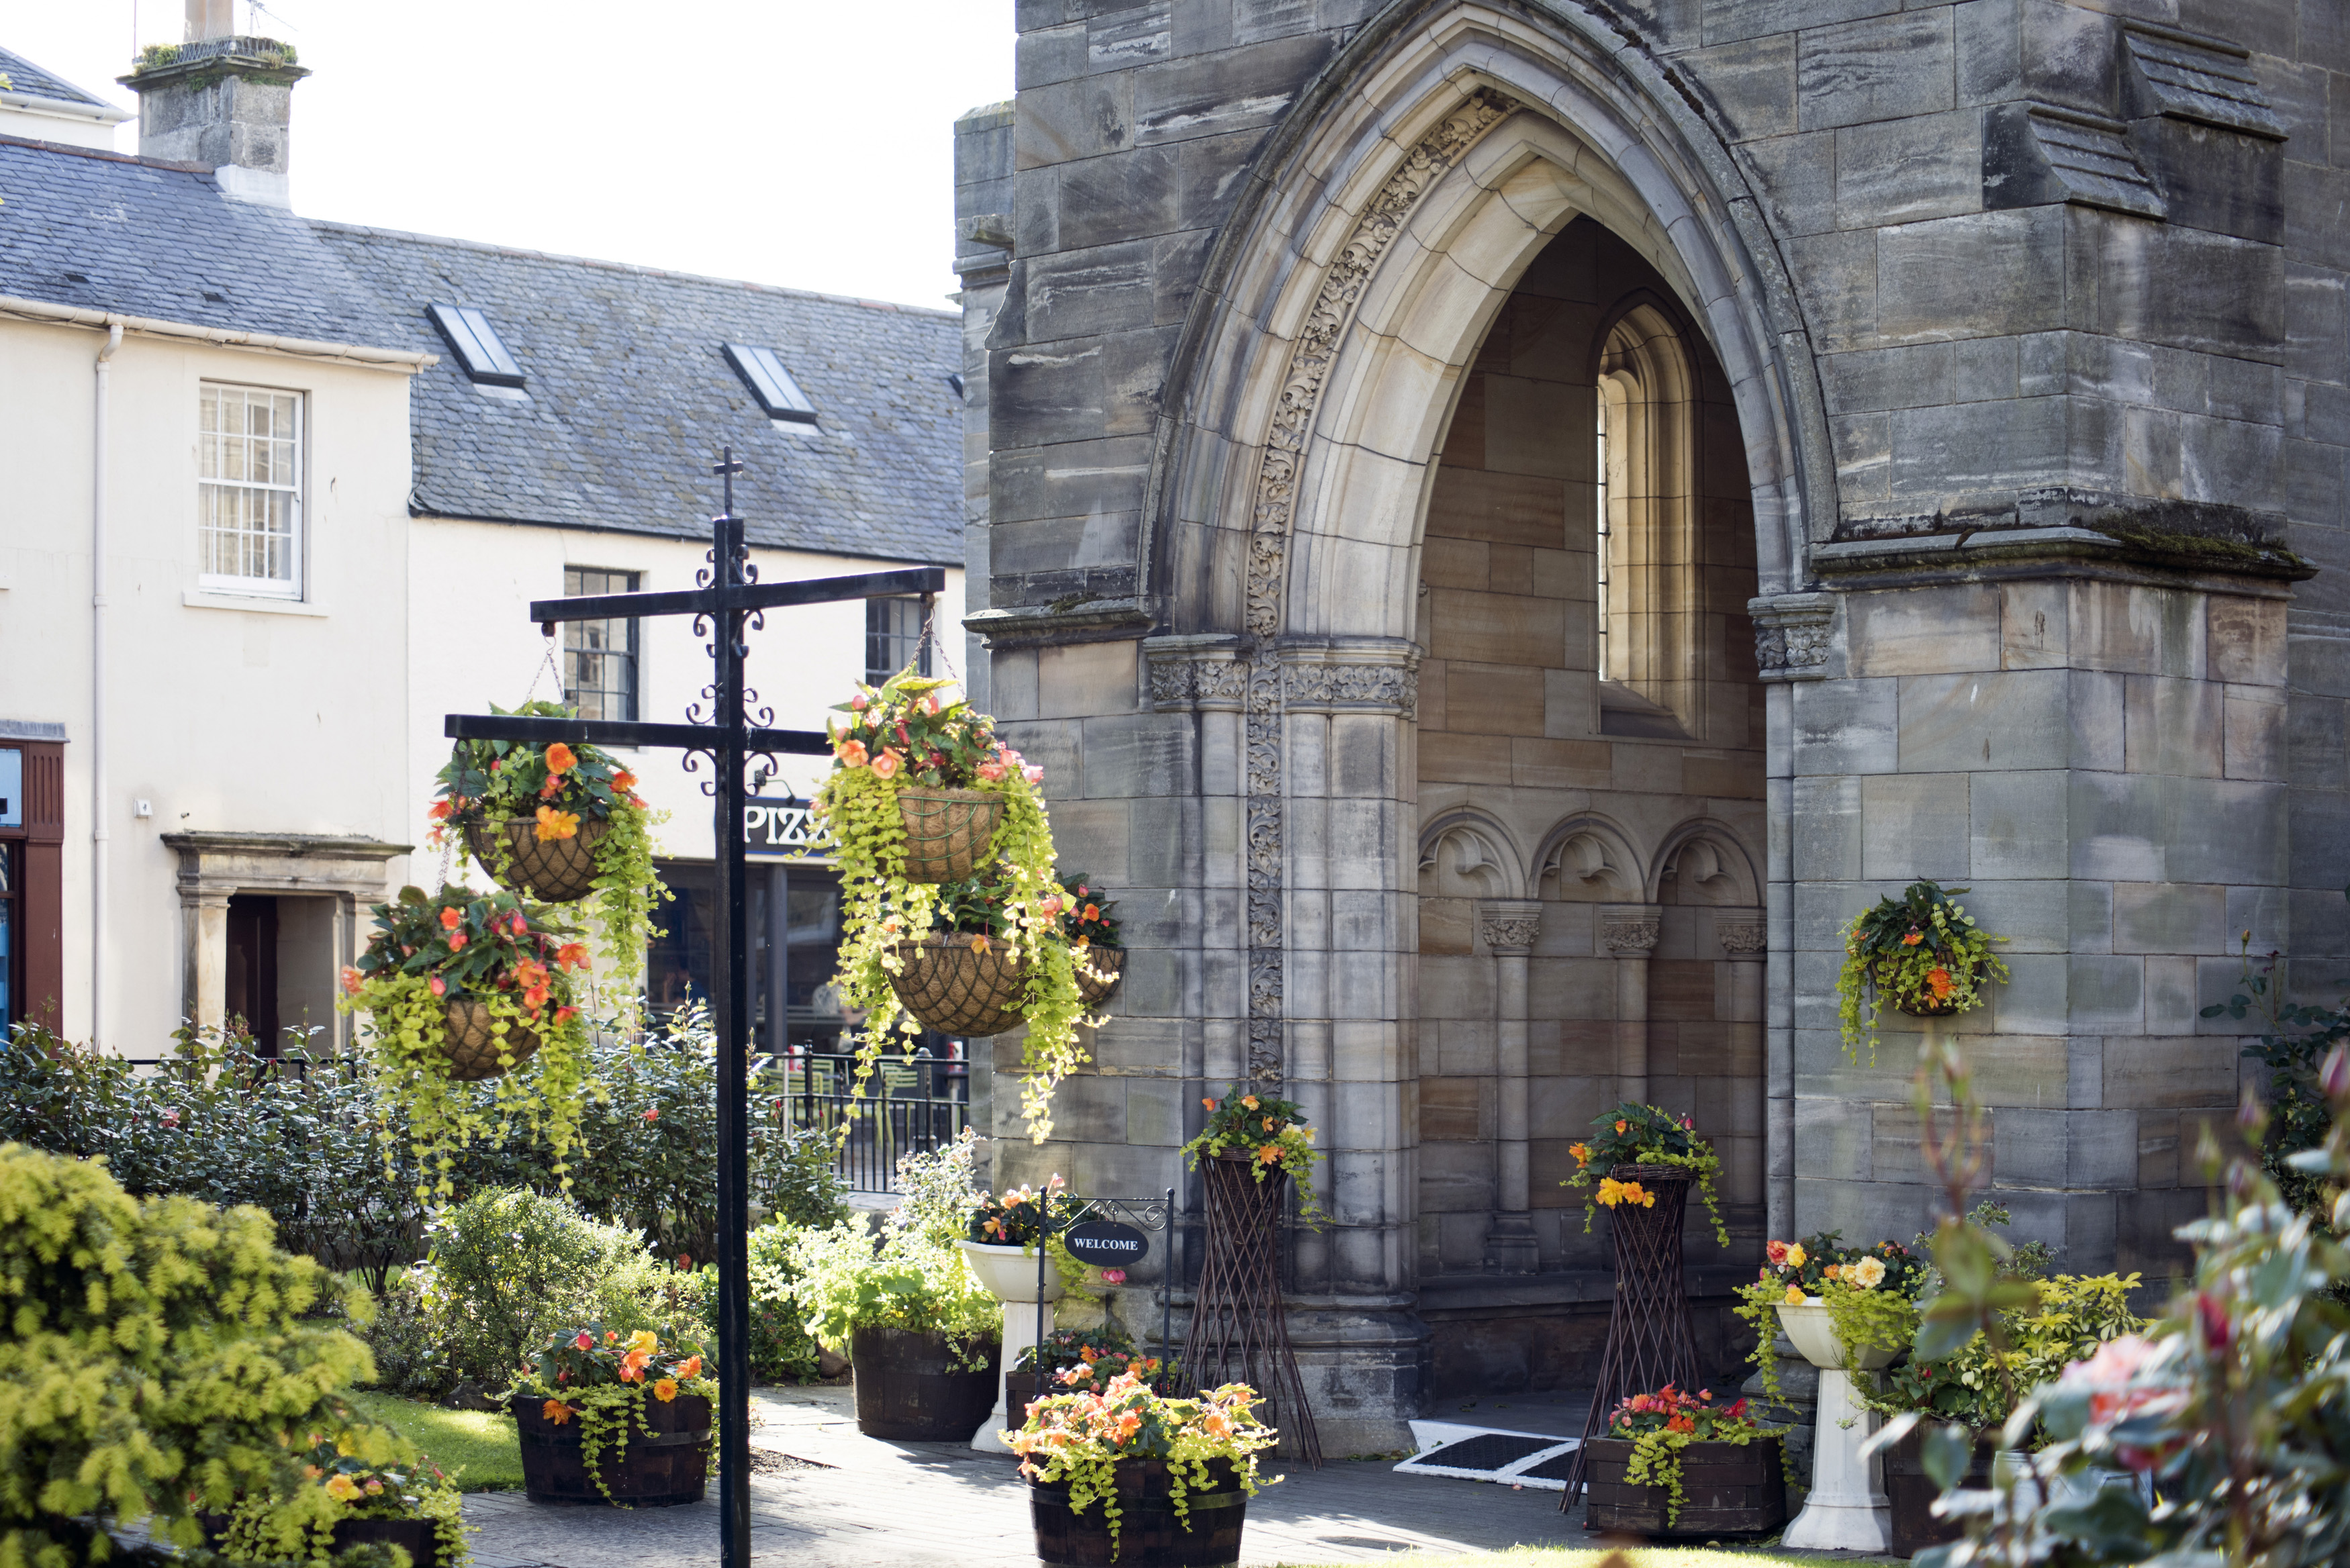 Flowing baskets near old stone church block entrance with arch in Saint Andrews, Scotland